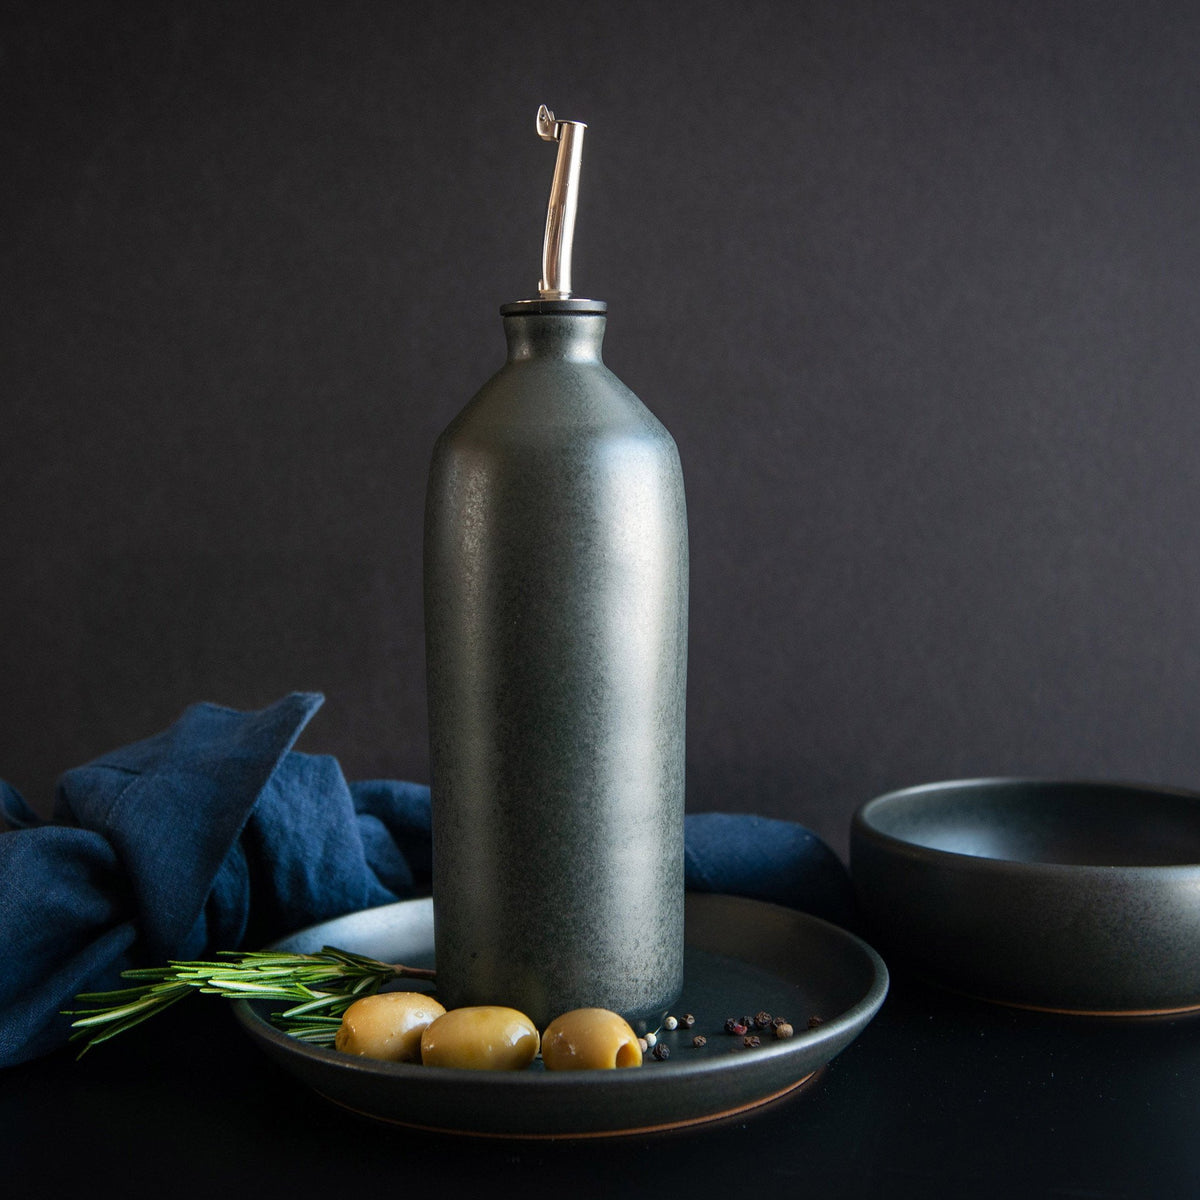 Lookbook - Handmade Black Glazed Porcelain Oil Bottle - Sold by Chic & Basta